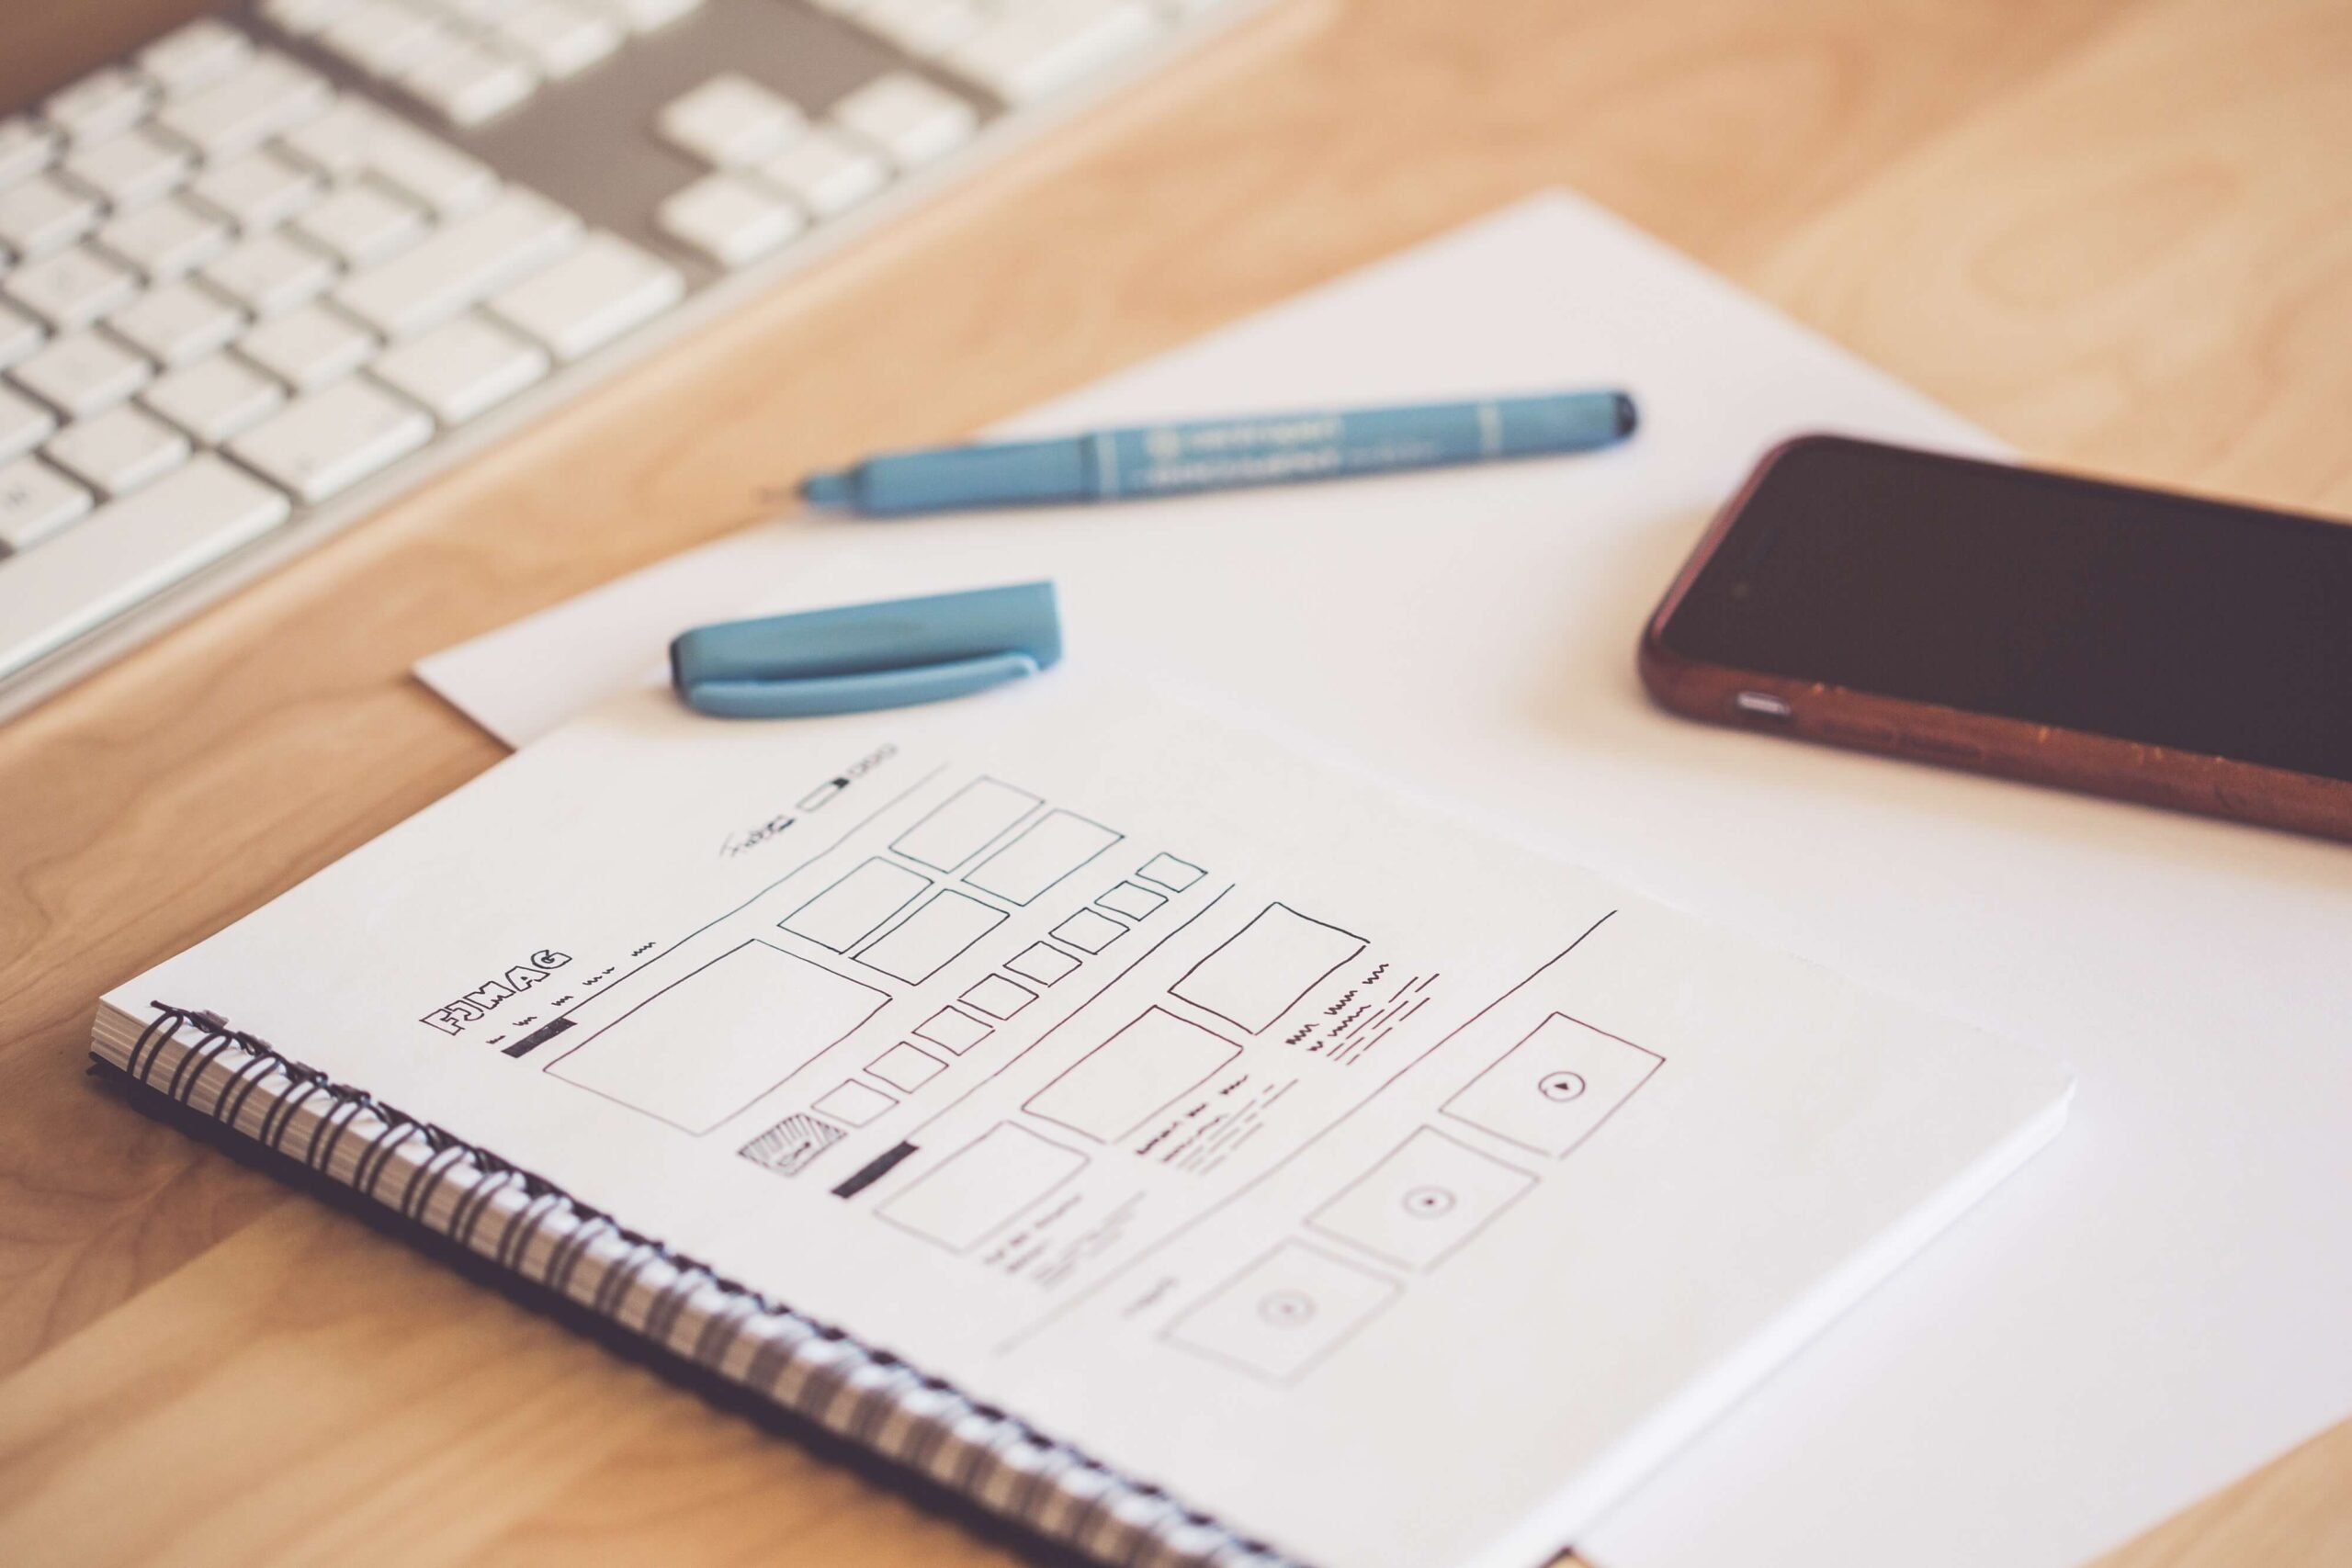 A white notebook with sketches of a new website design that includes the Rule of Thirds.